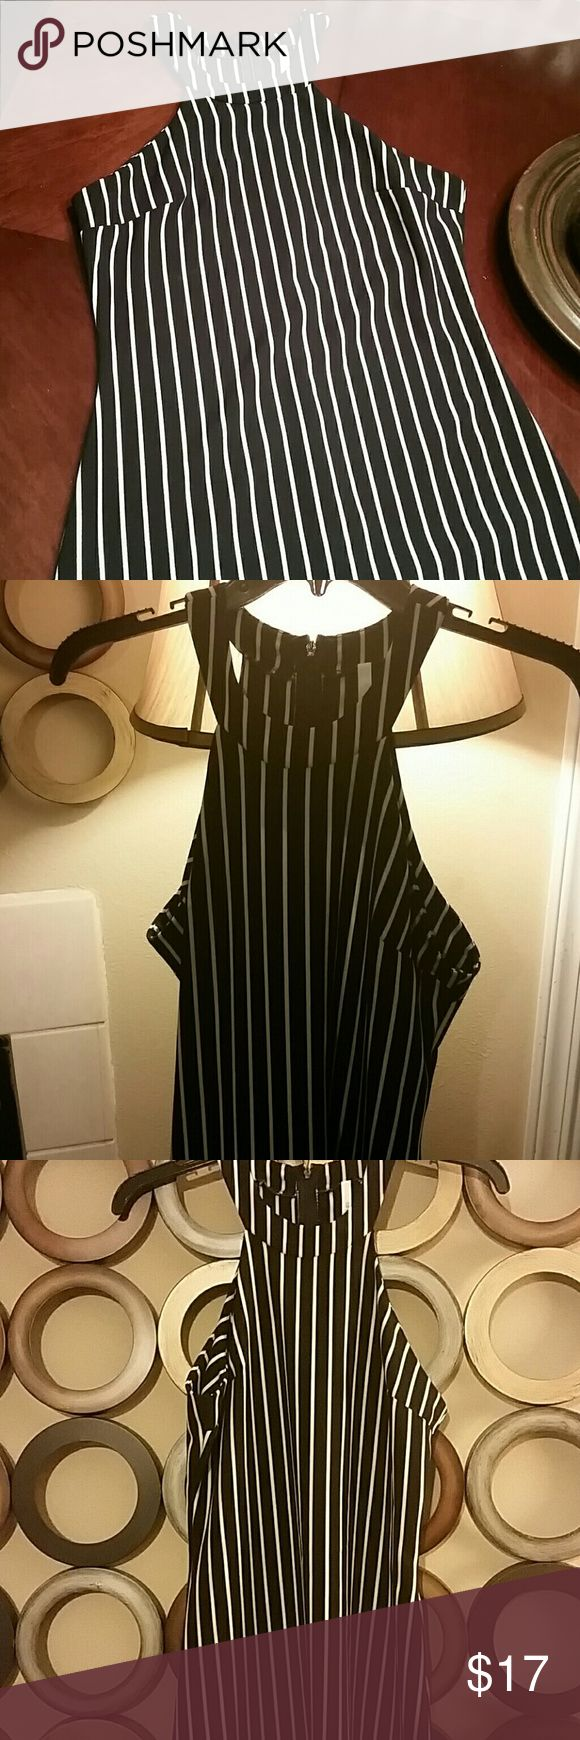 Very cute, vertical striped dress! Cute, vertical striped, black & white,  sleeveless mini dress! Back zipper. Pair with turtleneck, tights and boots or wear in the warmer months with sandals or heels. Nice! Worn once! Excellent condition! sage Dresses Mini